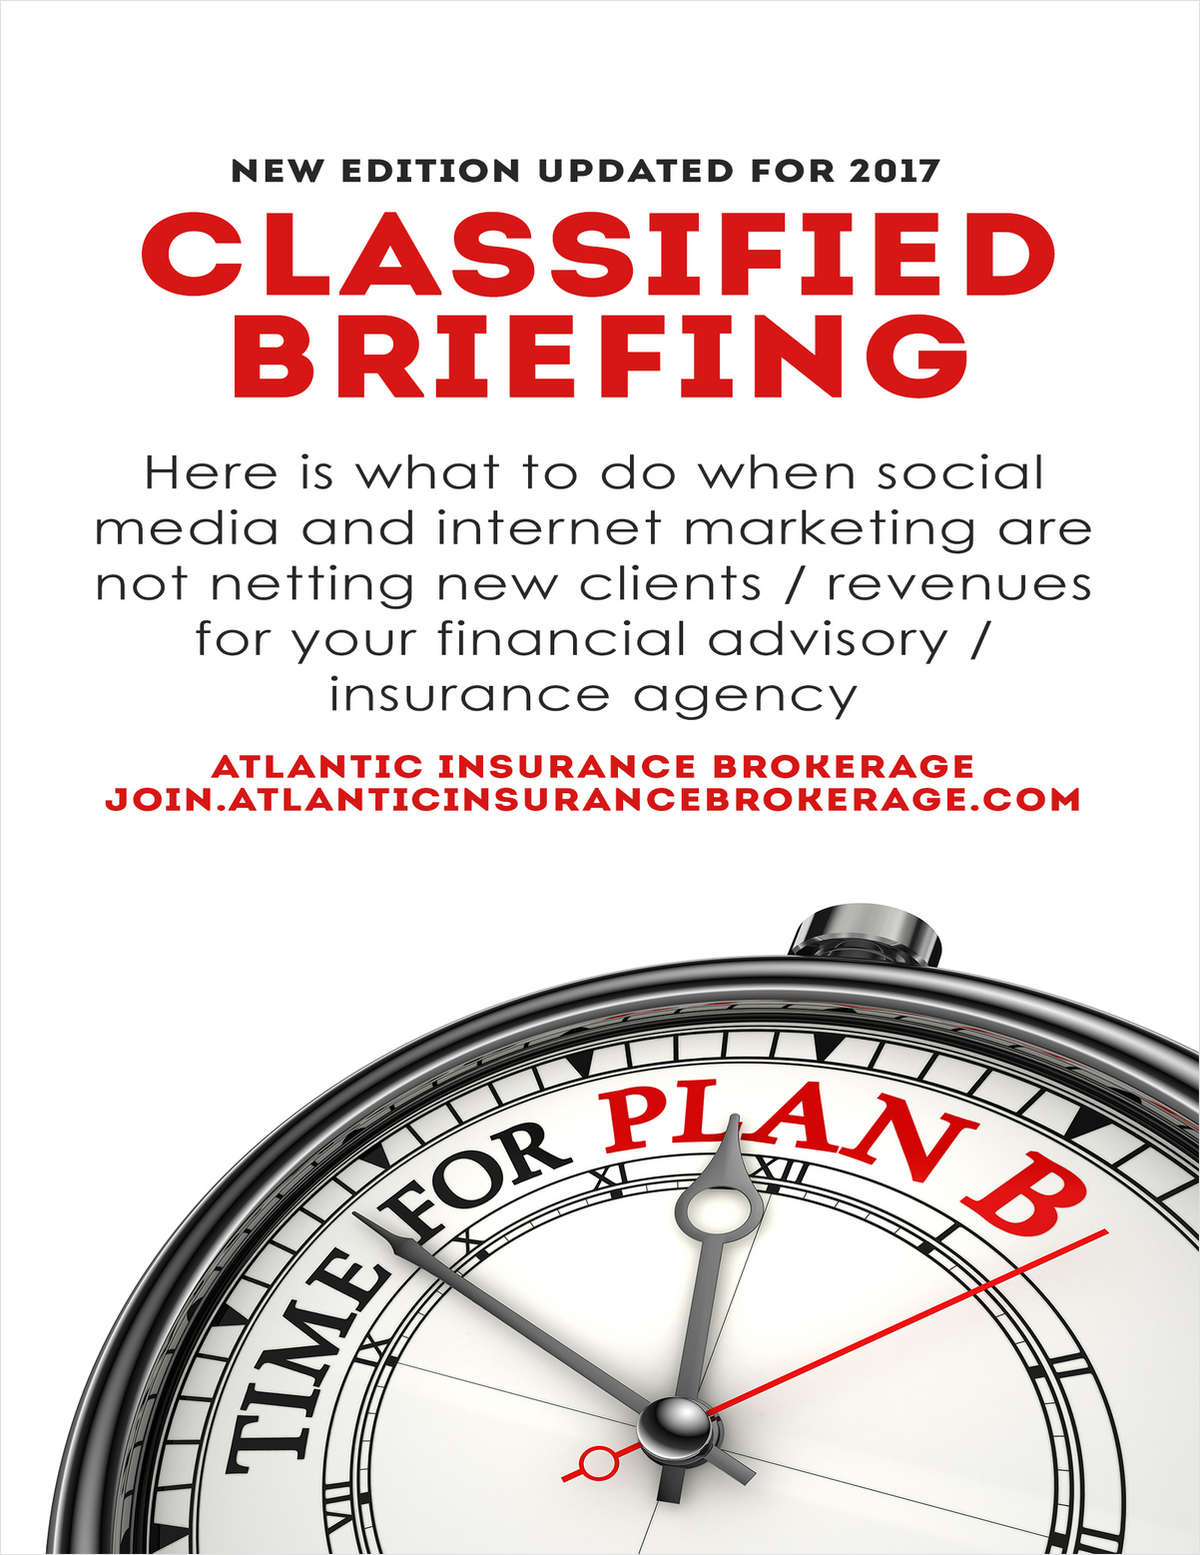 What to Do When Social Media / Web Marketing Fails to Net New Clients for an Insurance Agency / Financial Advisors